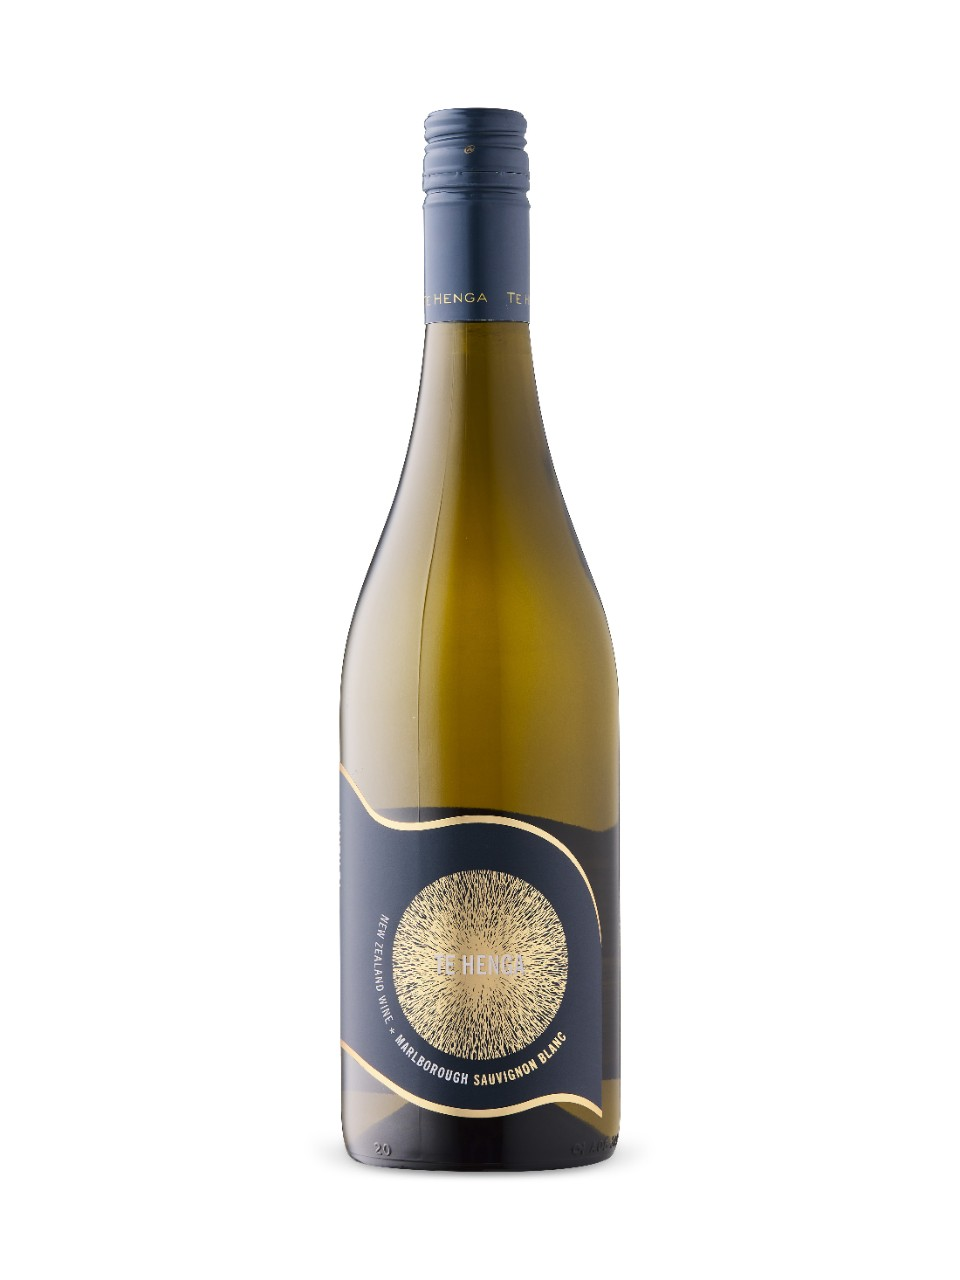 Te Henga Sauvignon Blanc Marlborough from LCBO